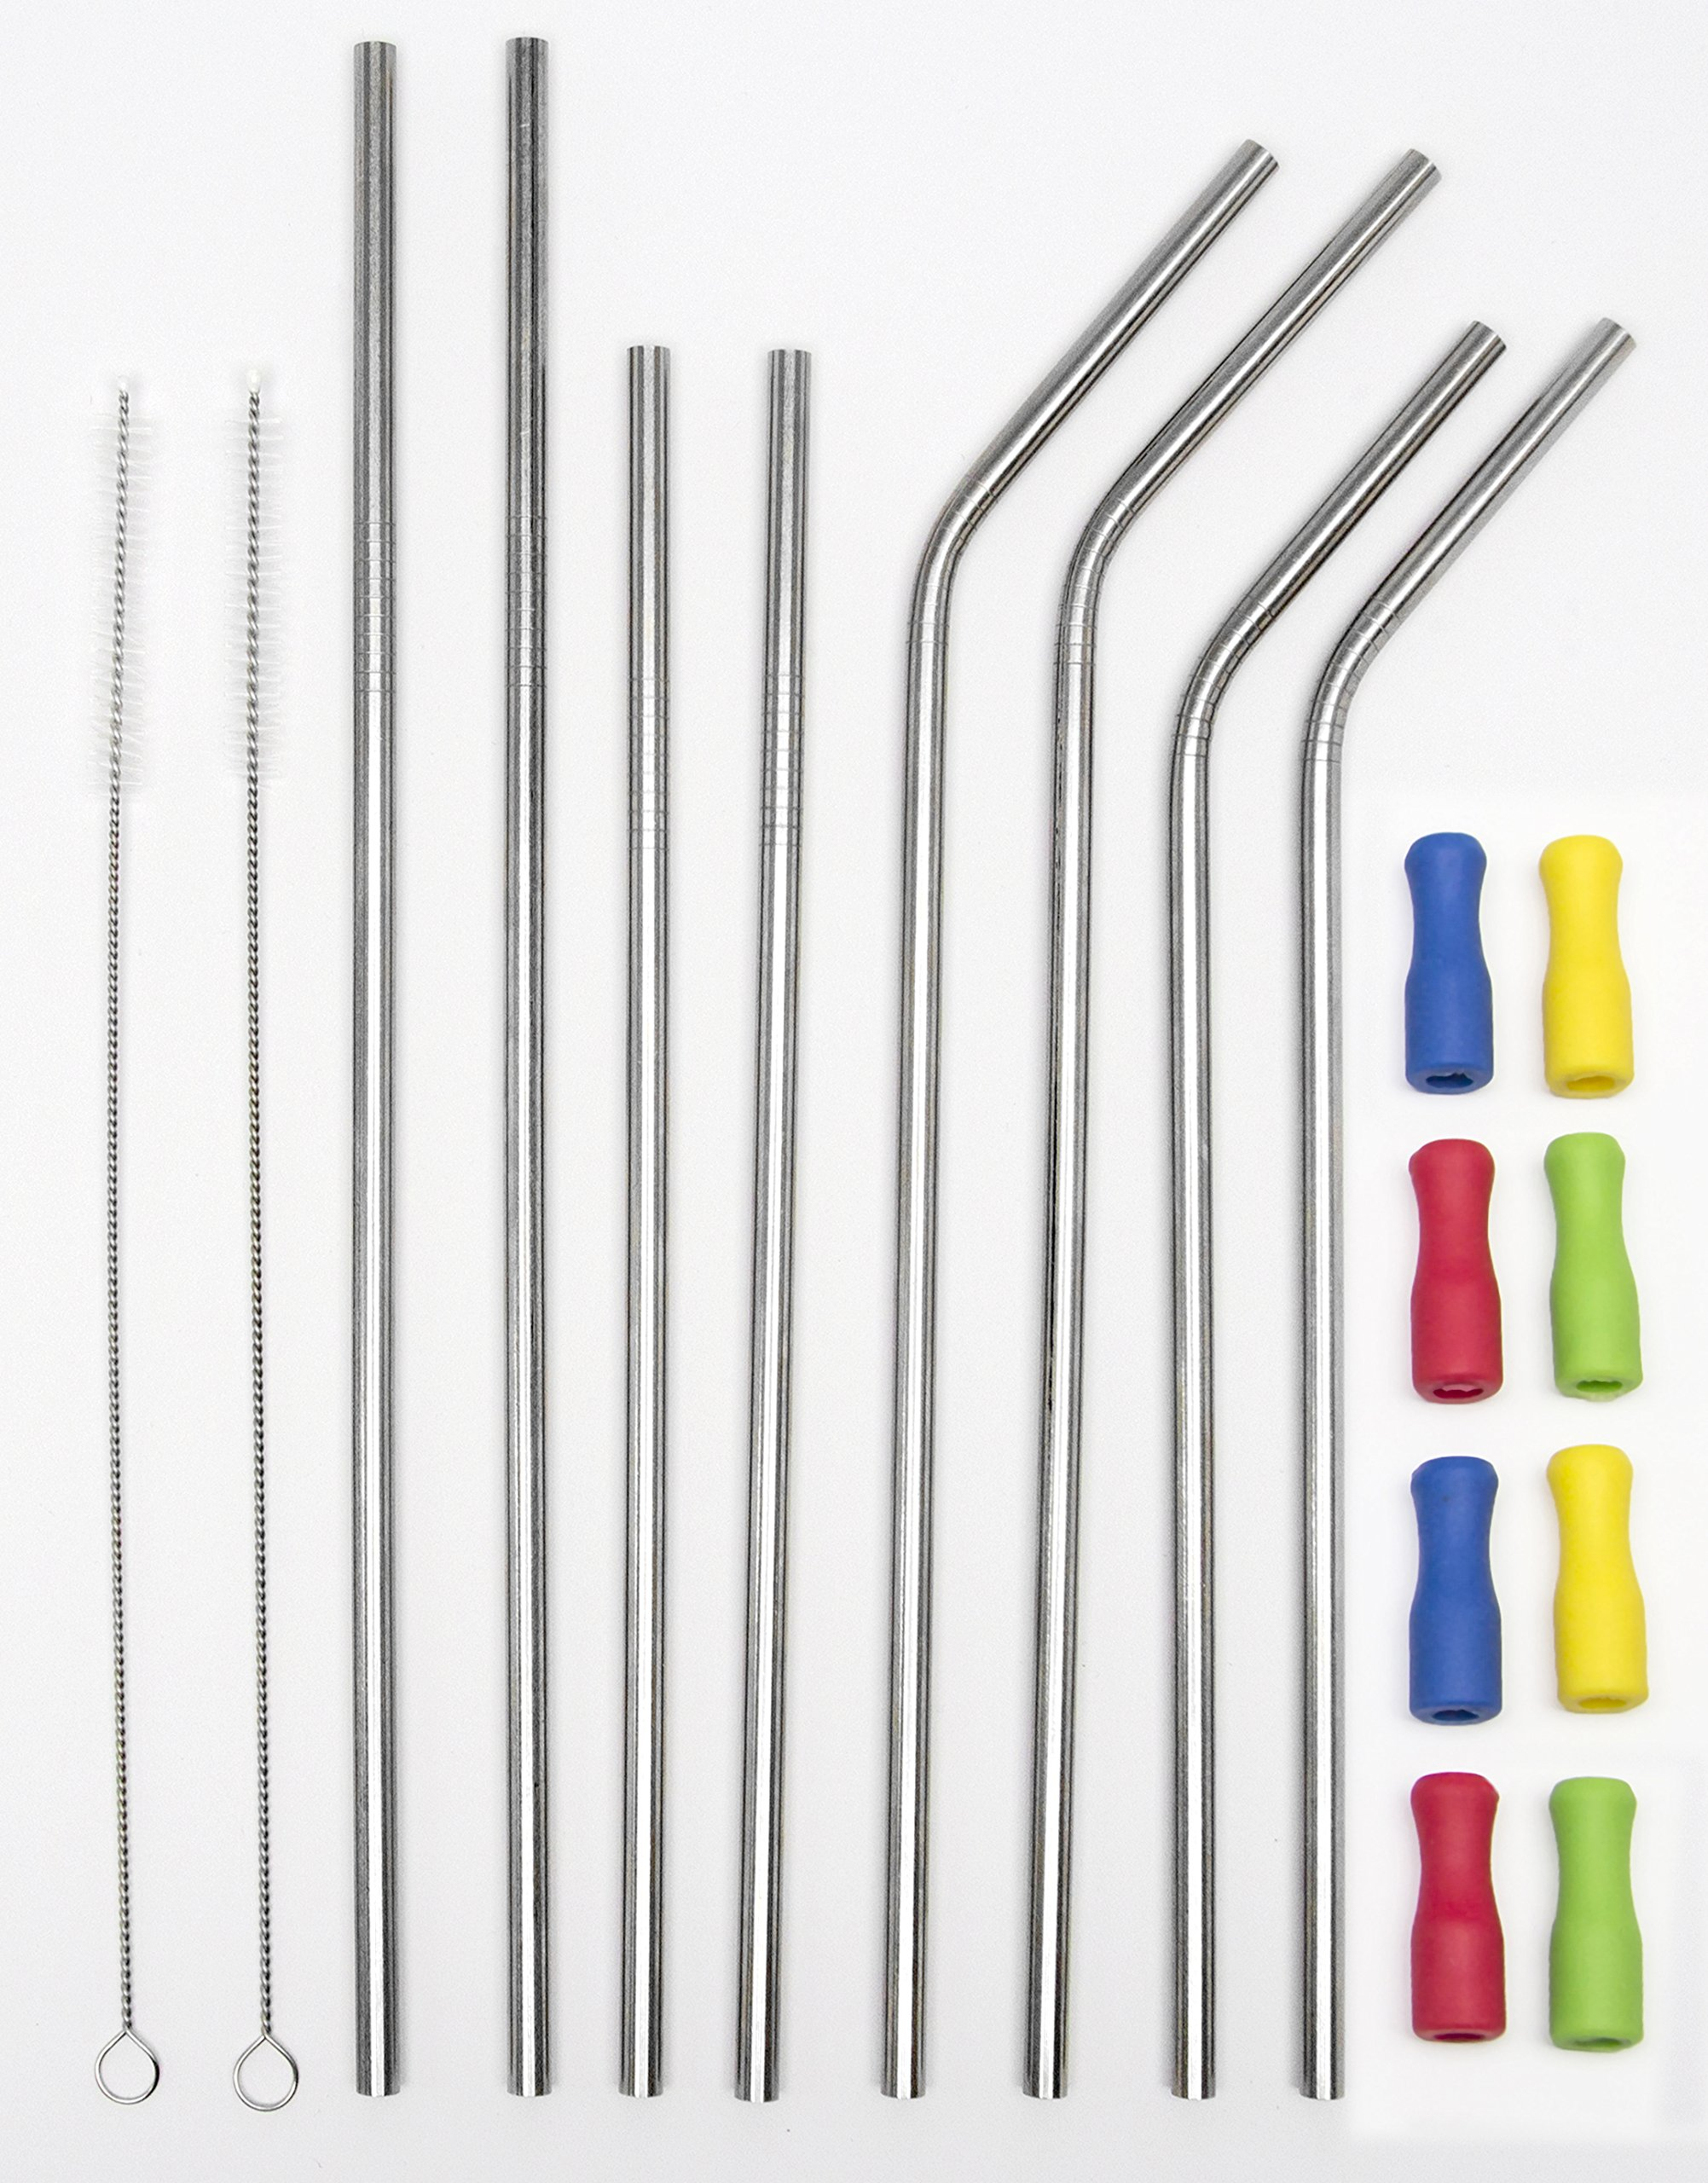 18 Piece Stainless Steel Tumbler Straw and Silicone Tips Set: 4 - Ultra Long 10.5'' and 4 - 9'' Drinking Metal Straws For 20, 30 oz Tumblers (4 Straight + 4 Bent + 2 Brushes + 8 silicone tips)